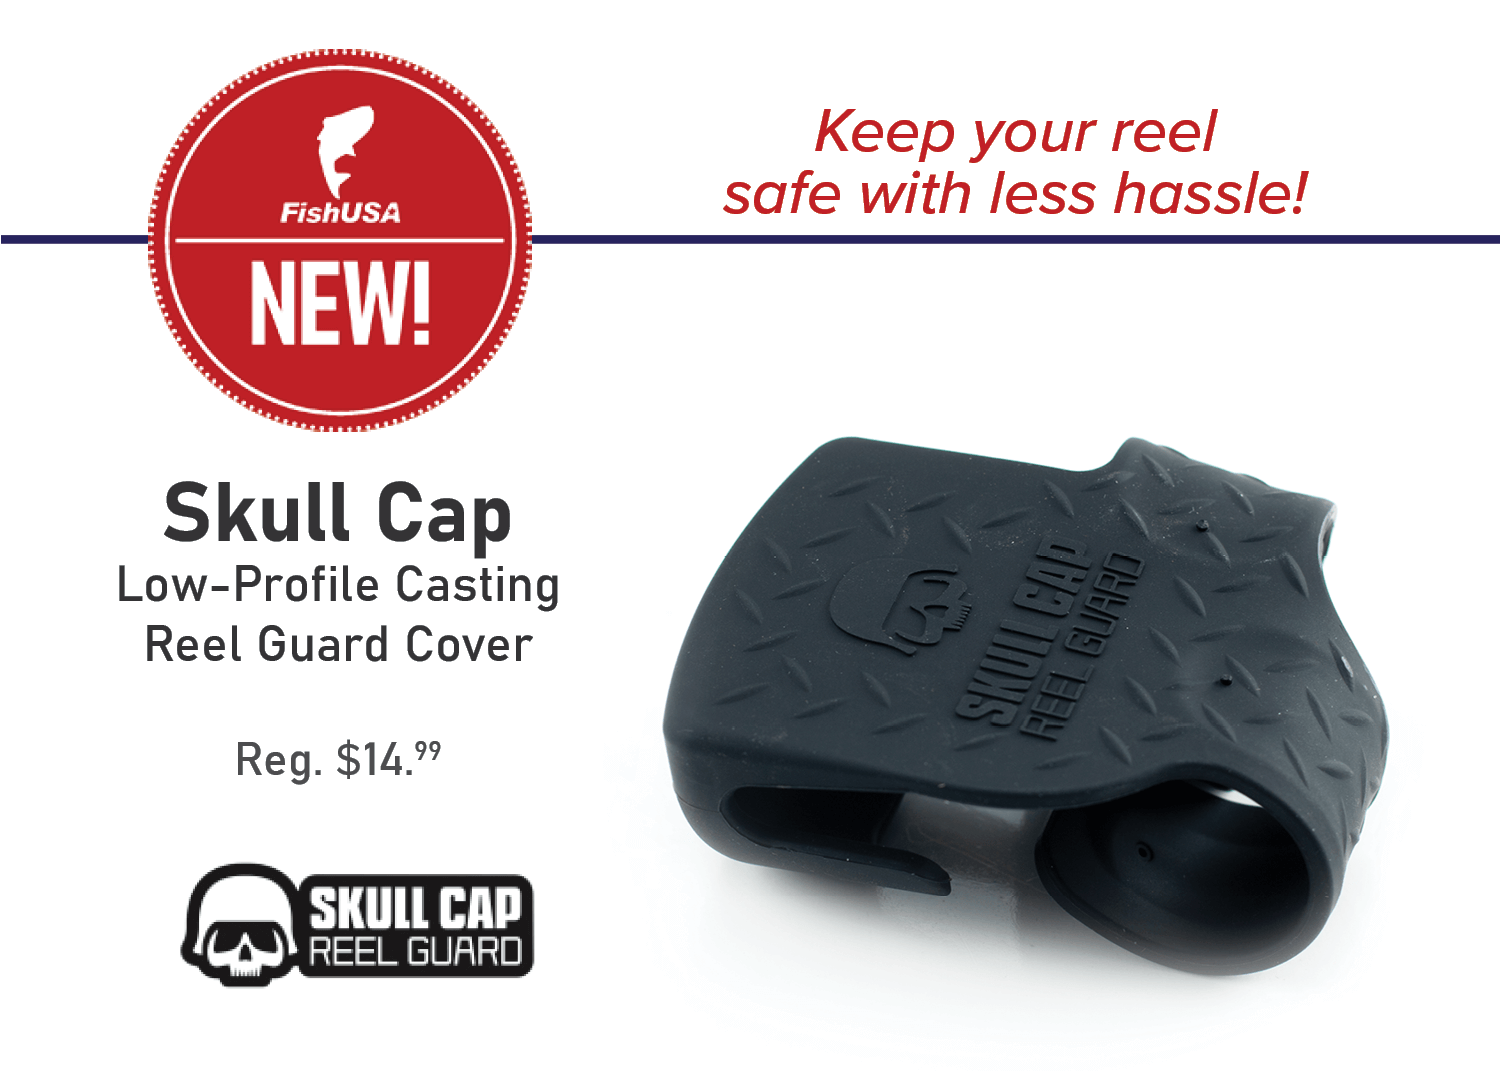 Skull Cap Low-Profile Casting Reel Guard Cover